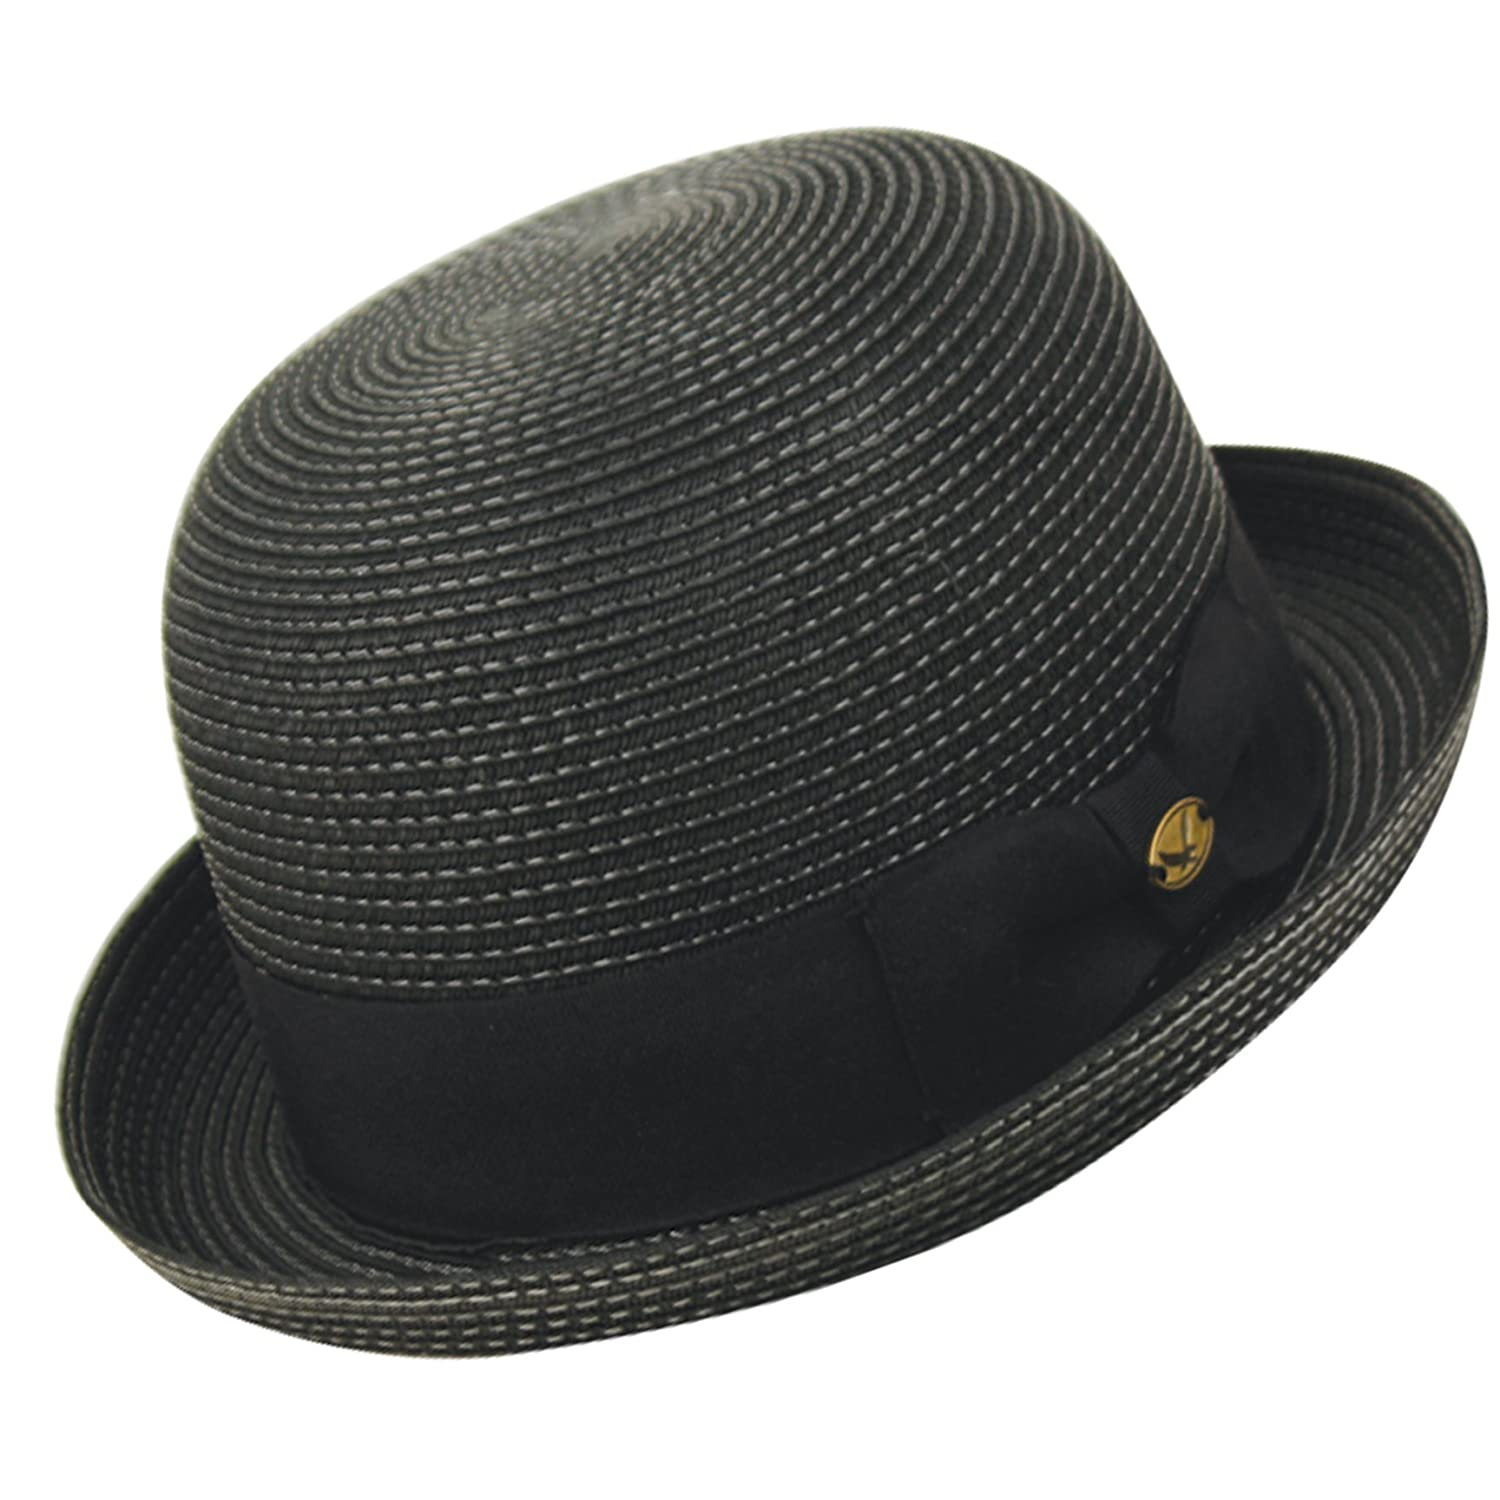 15ab4be90c Epoch hats Summer Bowler Hat